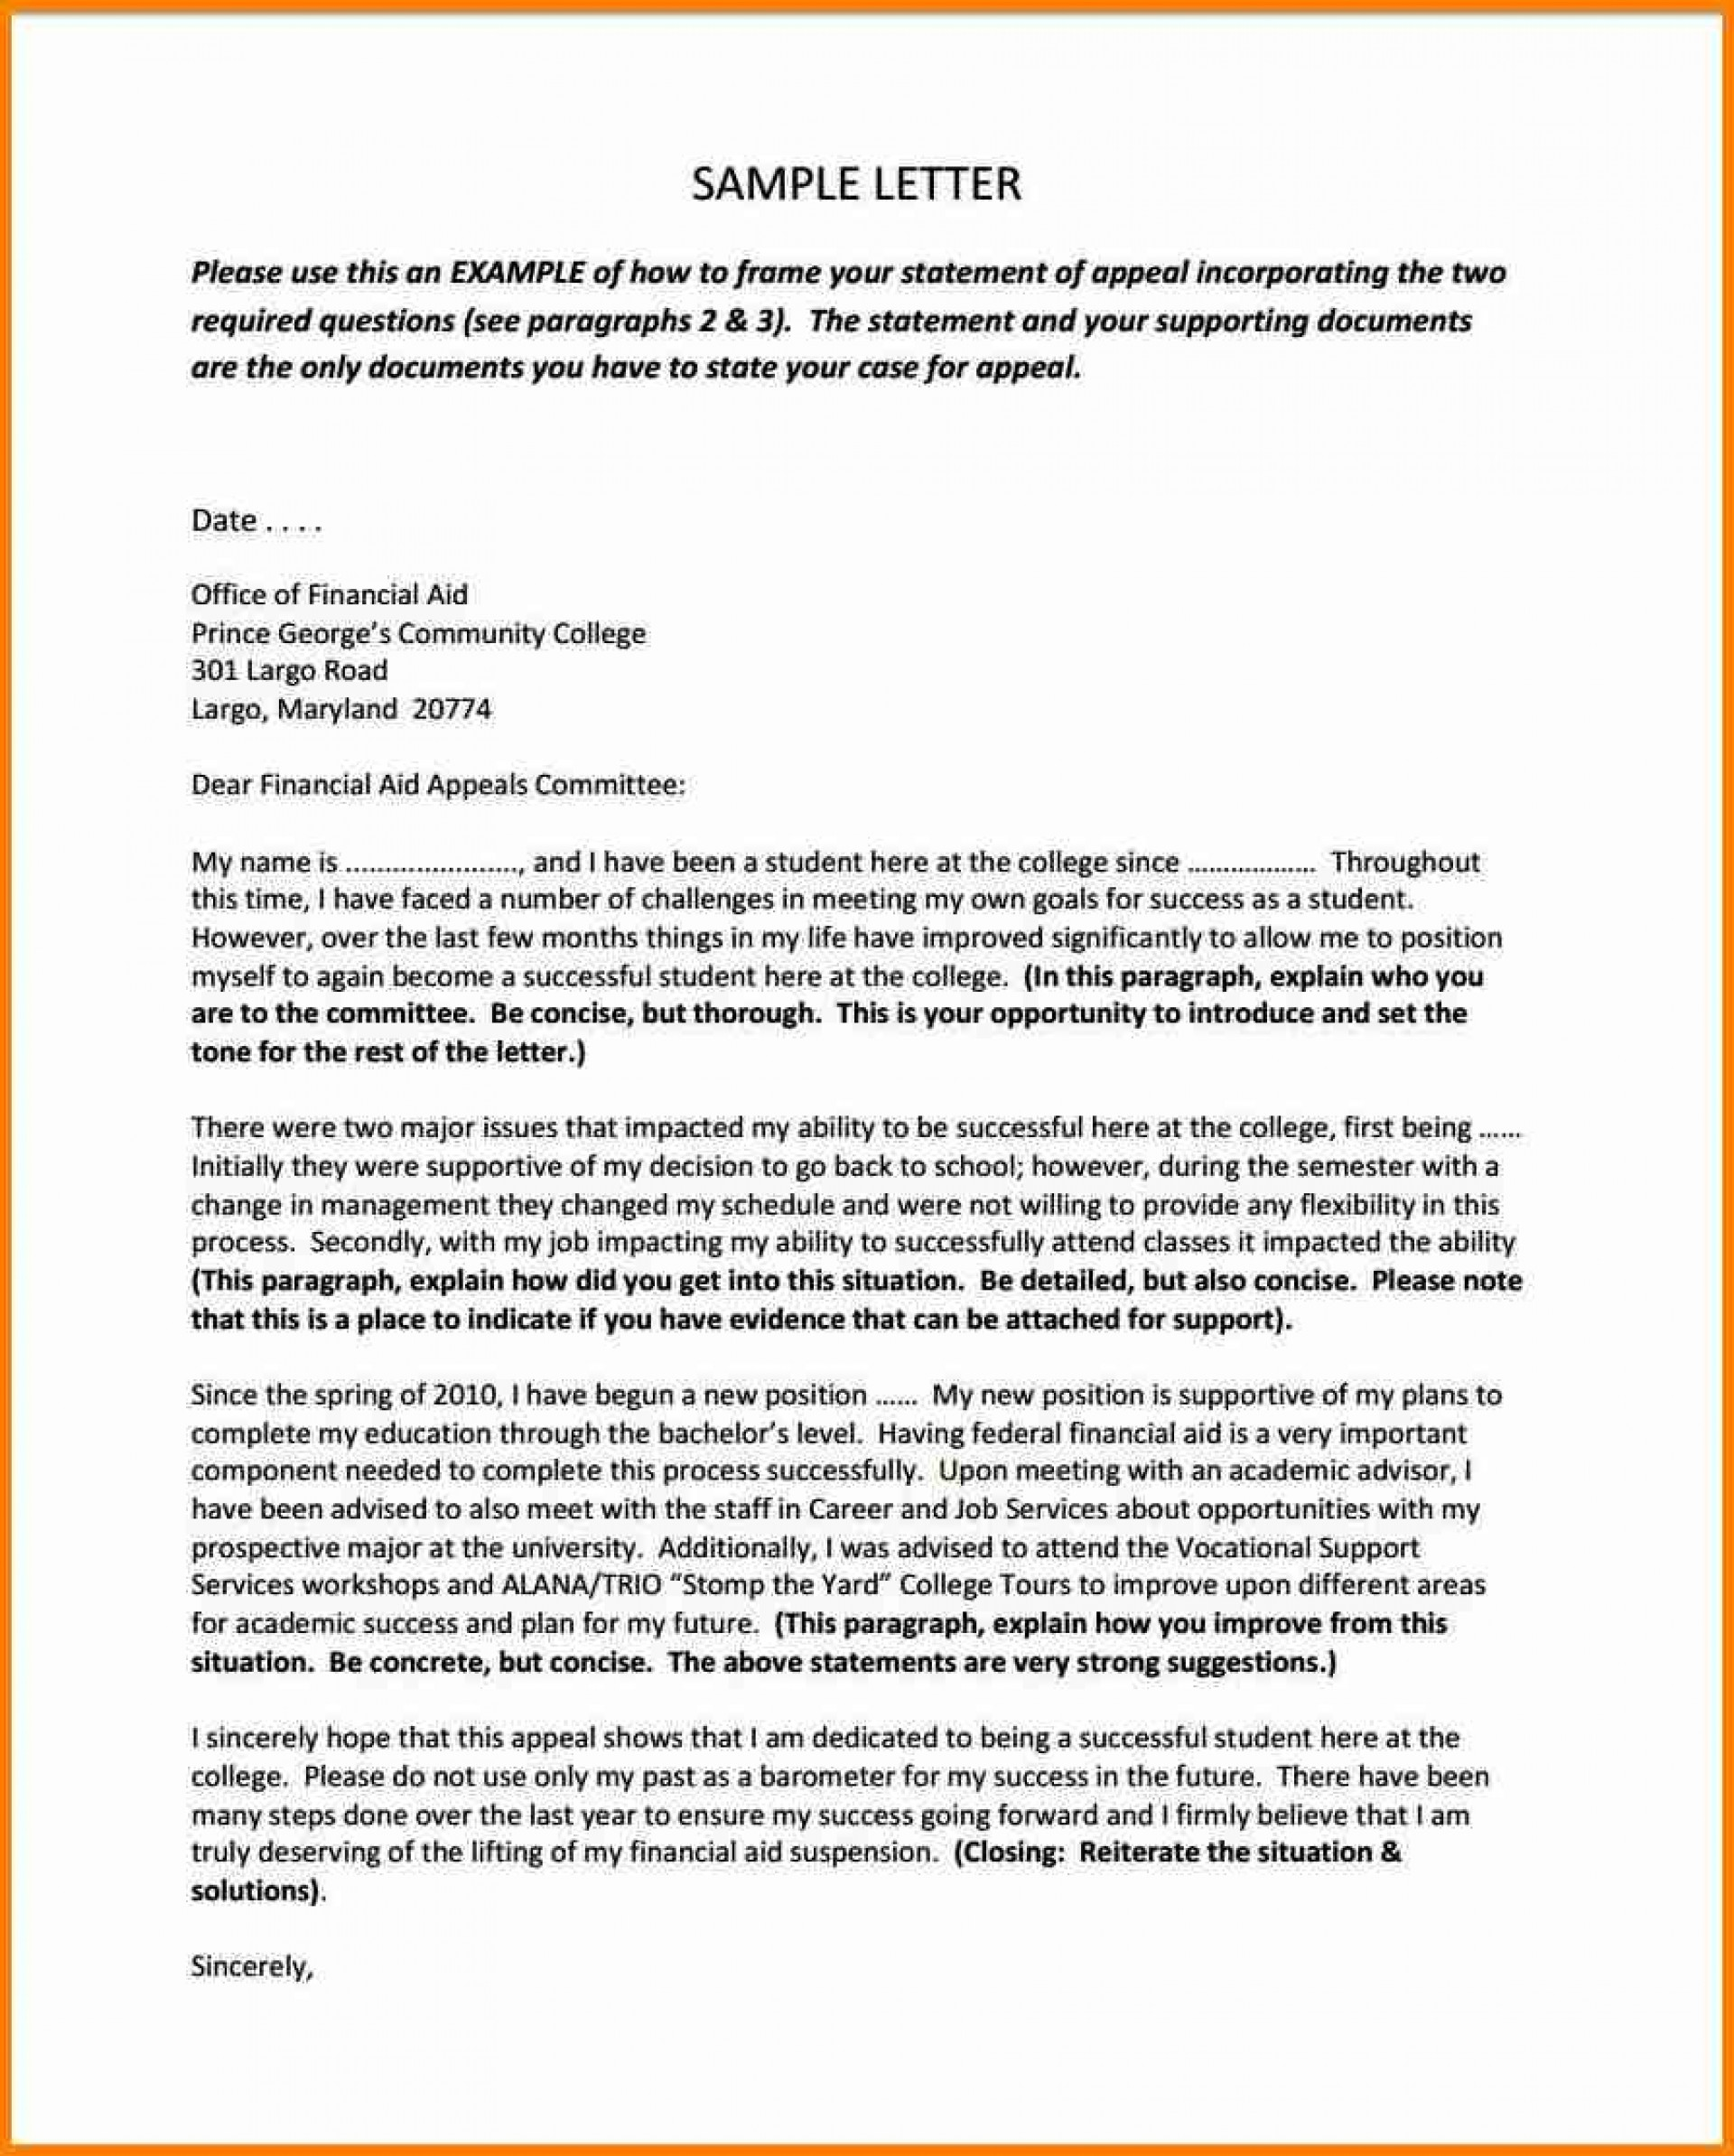 004 Essay Example Financial Aid Appeal Letter Essays Of Sample For Remarkable Examples Sap 1920